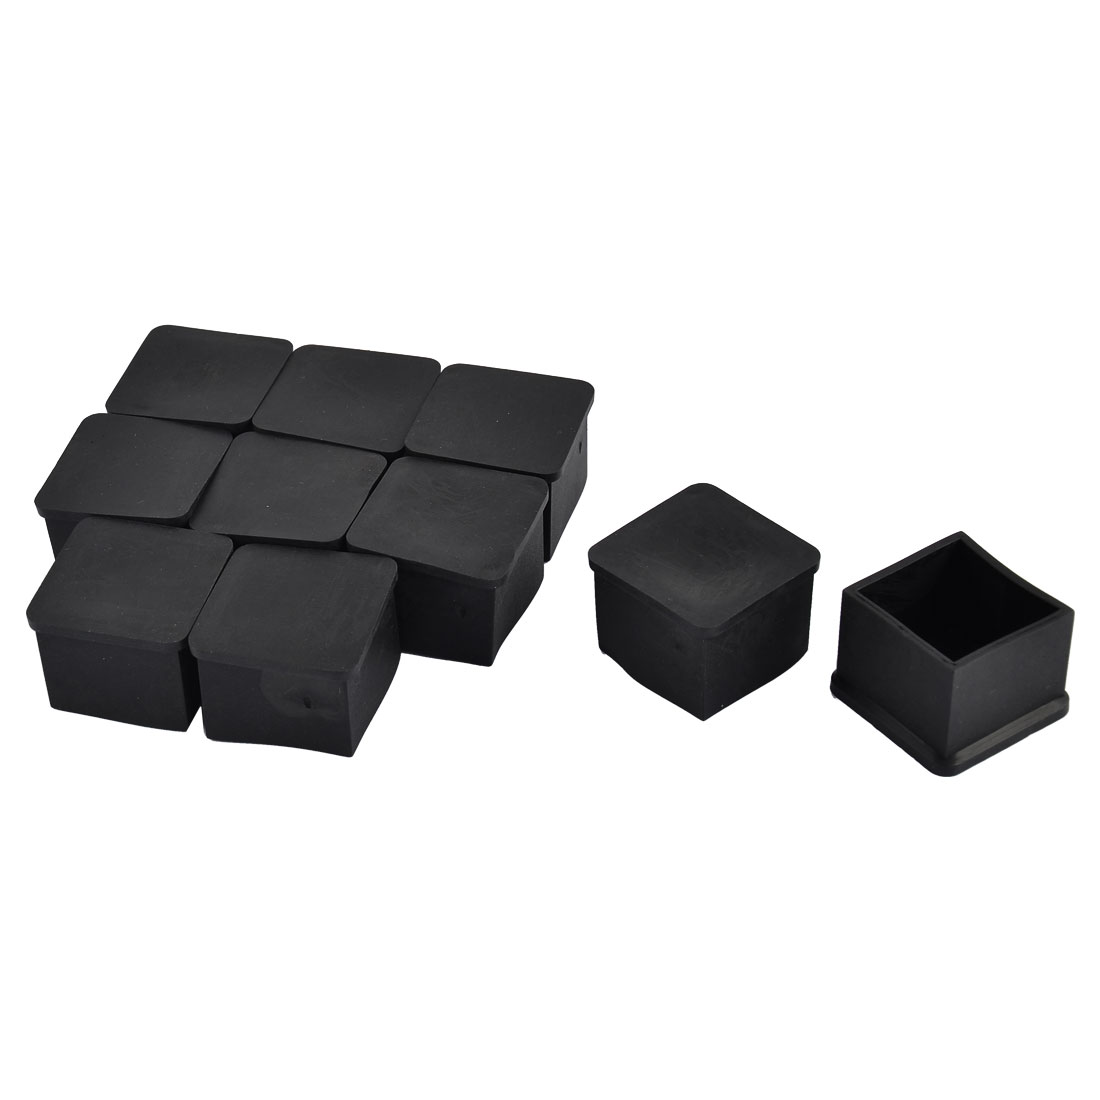 Furniture Chair Table Legs PVC Flat Base Square Tube Pipe Inserts Caps Protector Black 40mm x 40mm 10pcs